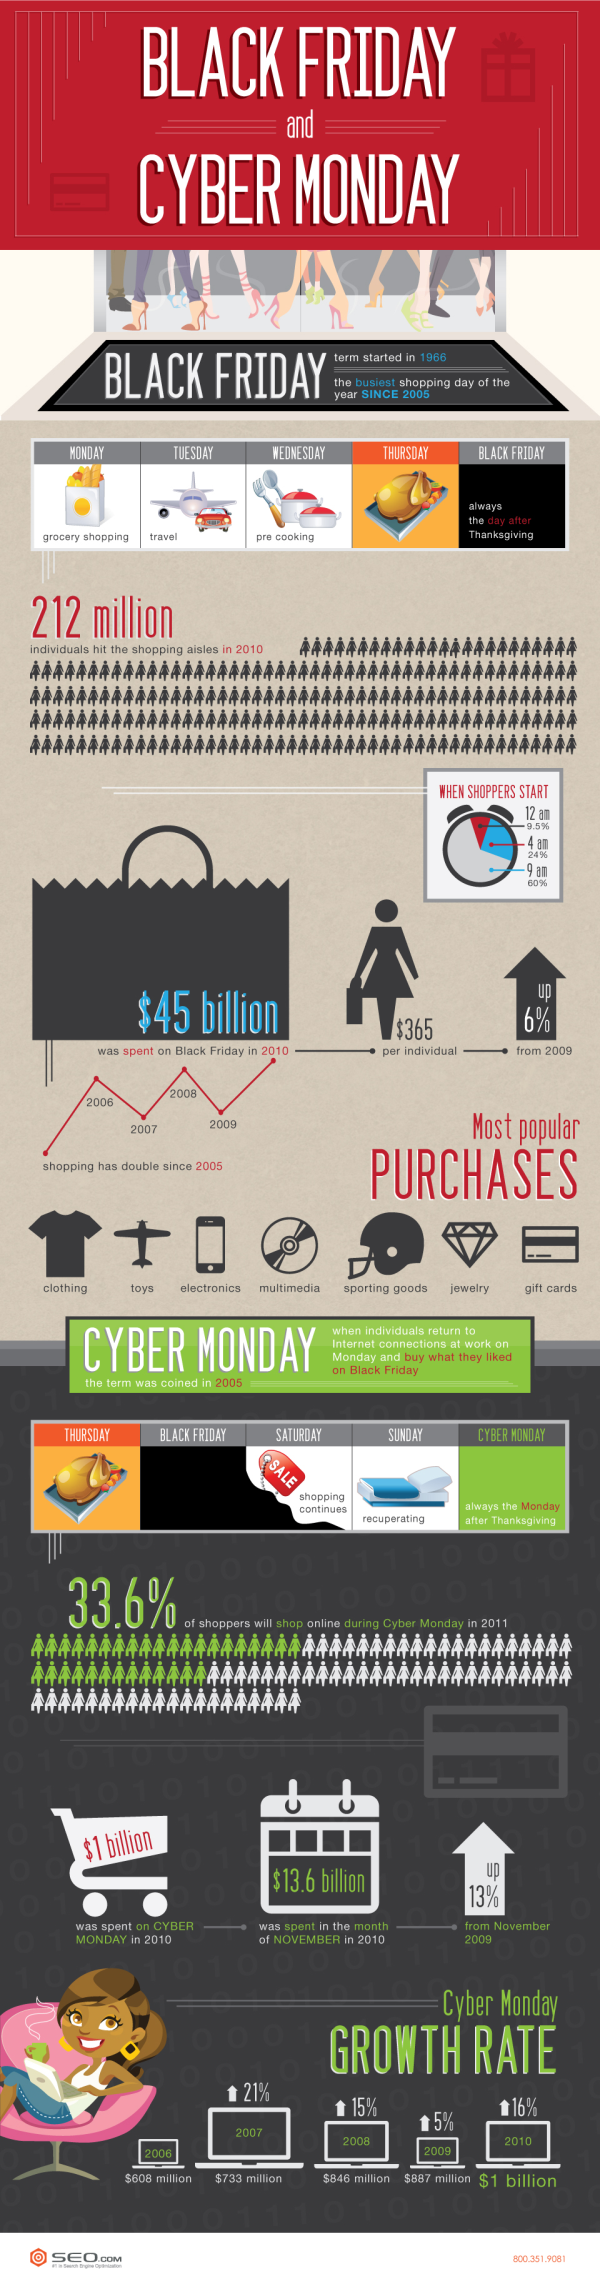 Black Friday and Cyber Monday Infographic resized 600